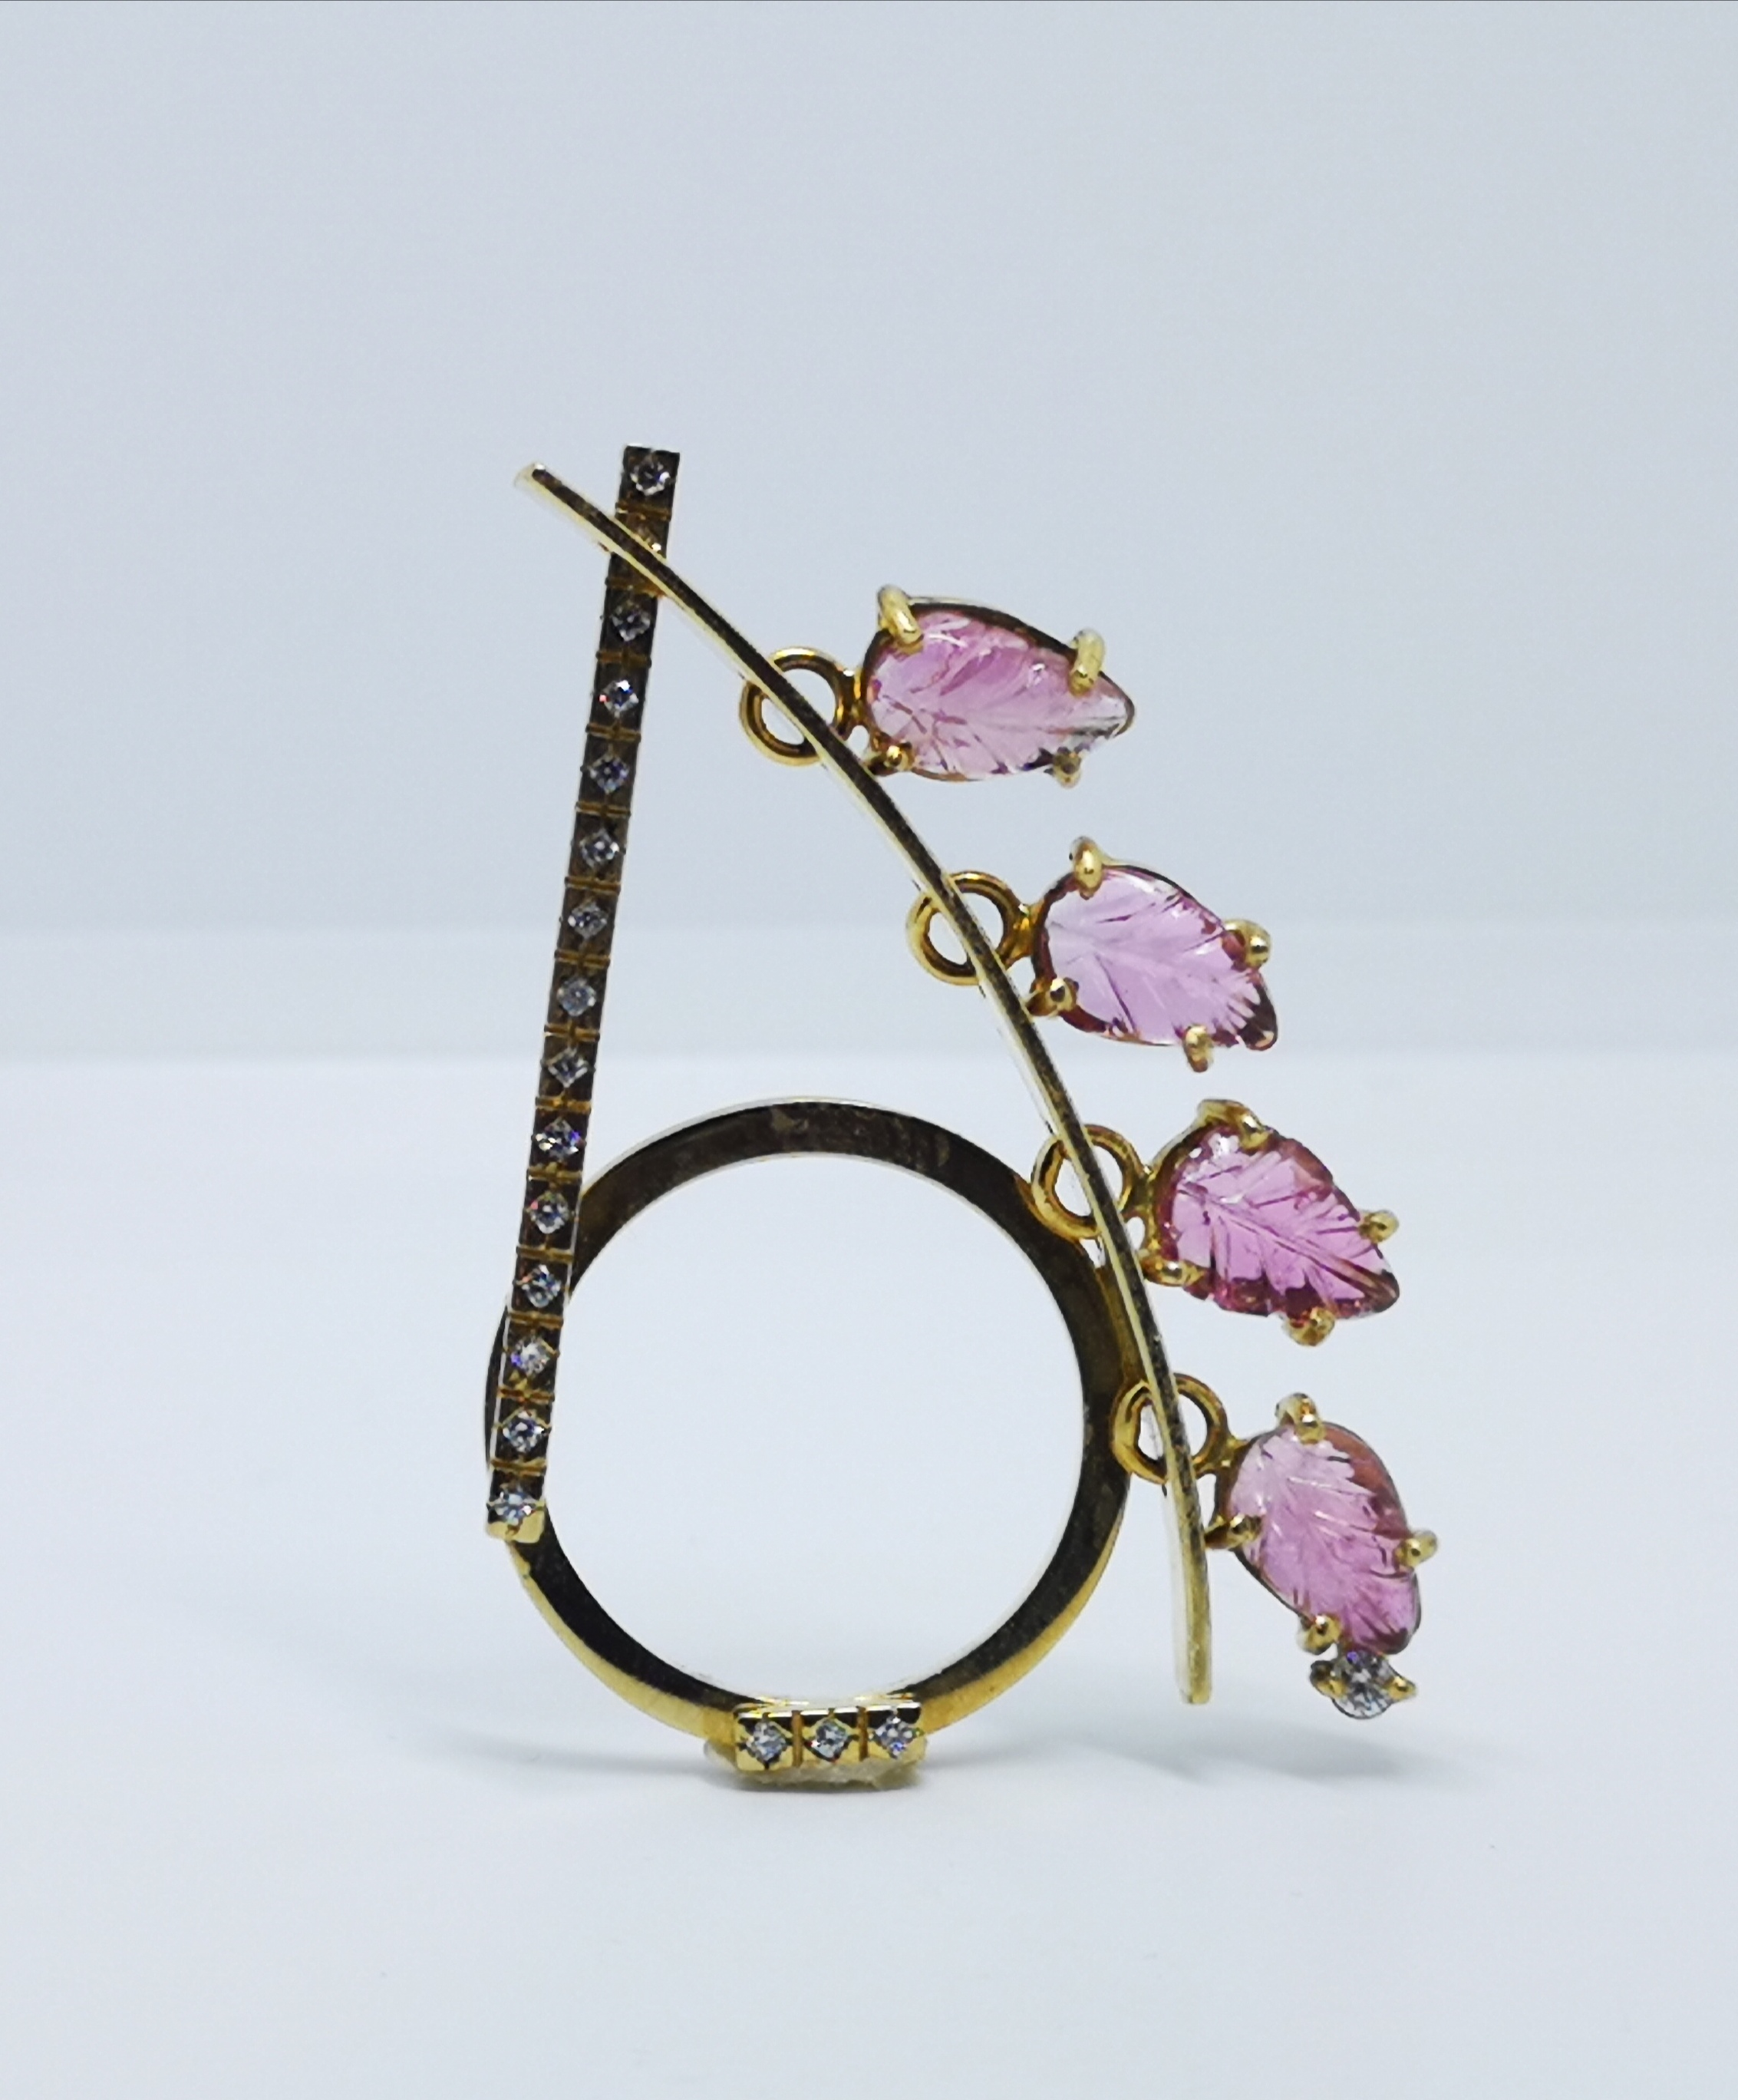 Ring in 18kt gold with Pink Tourmalines & brilliant diamonds